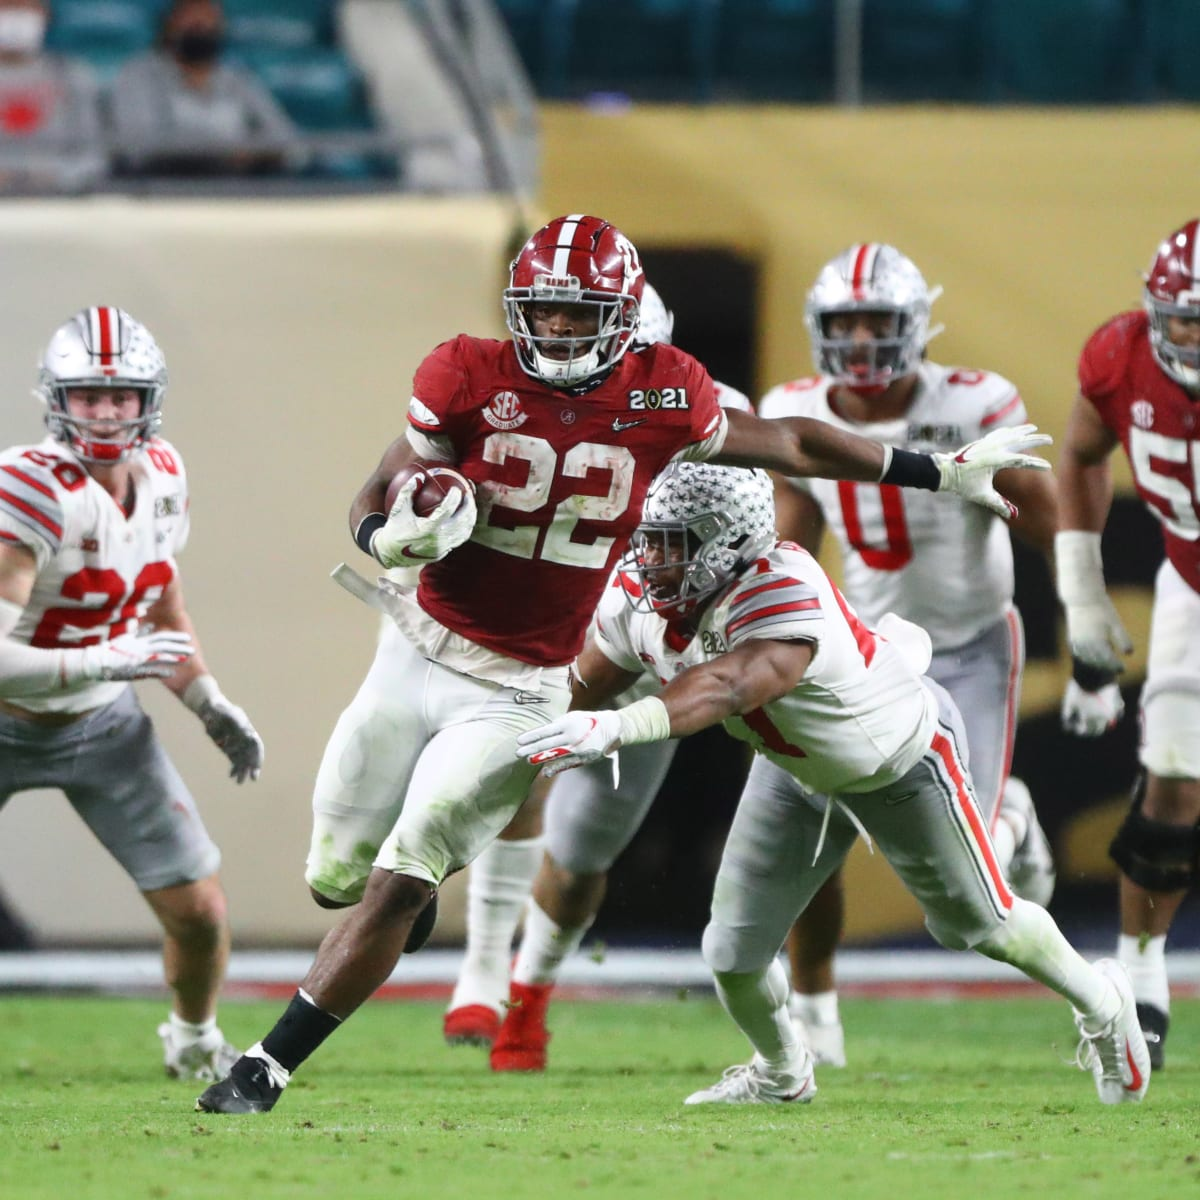 Hot Take Tuesday: Alabama running back Najee Harris will be a future Hall of Famer - The NFL Draft Bible on Sports Illustrated: The Leading Authority on the NFL Draft